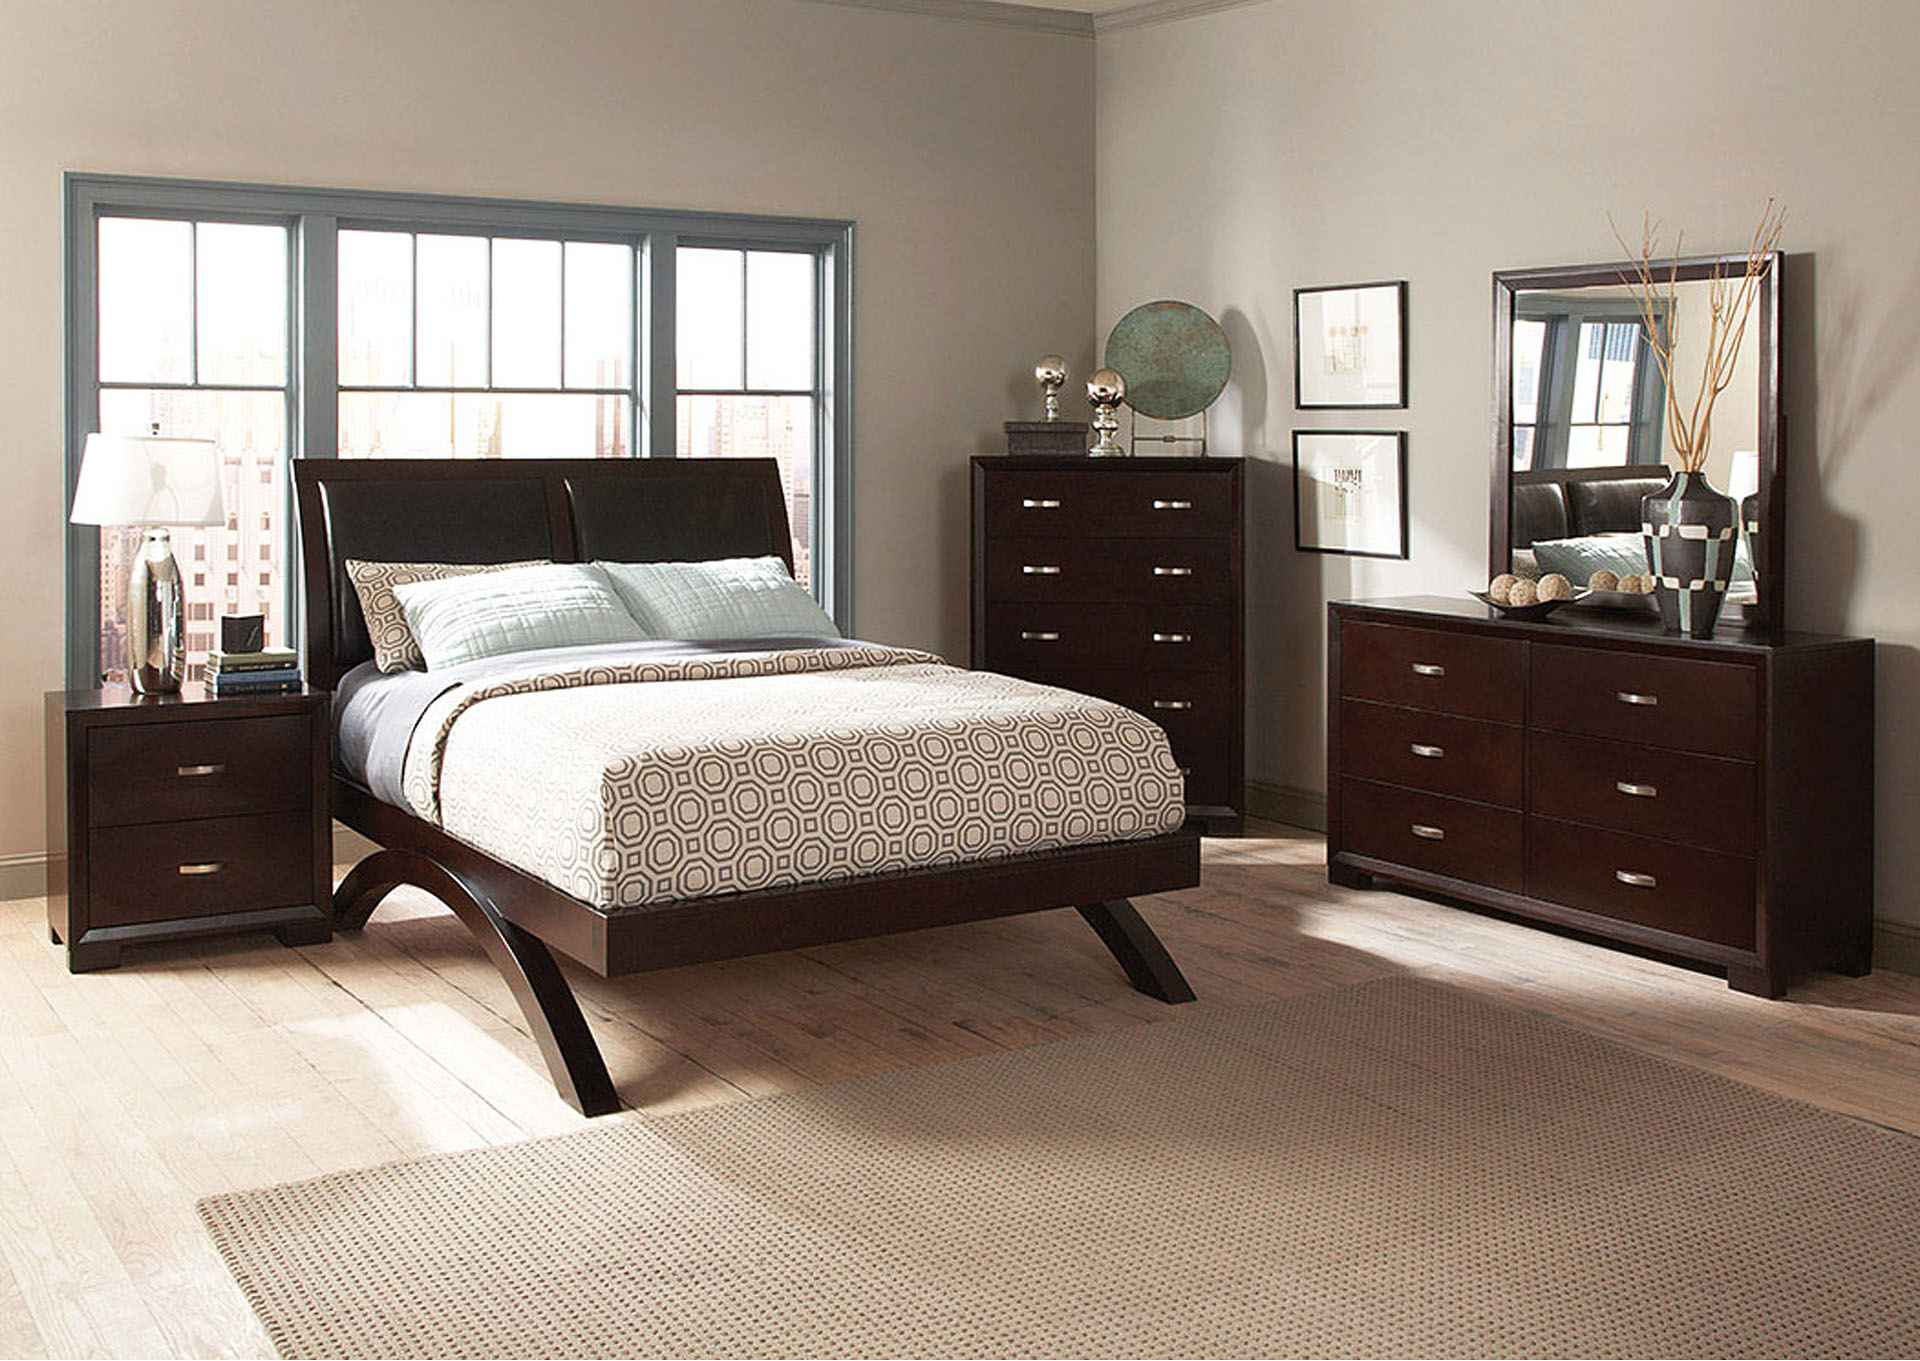 Queen Platform Bed w/ Dresser, Mirror, Drawer Chest and Nightstand,Homelegance